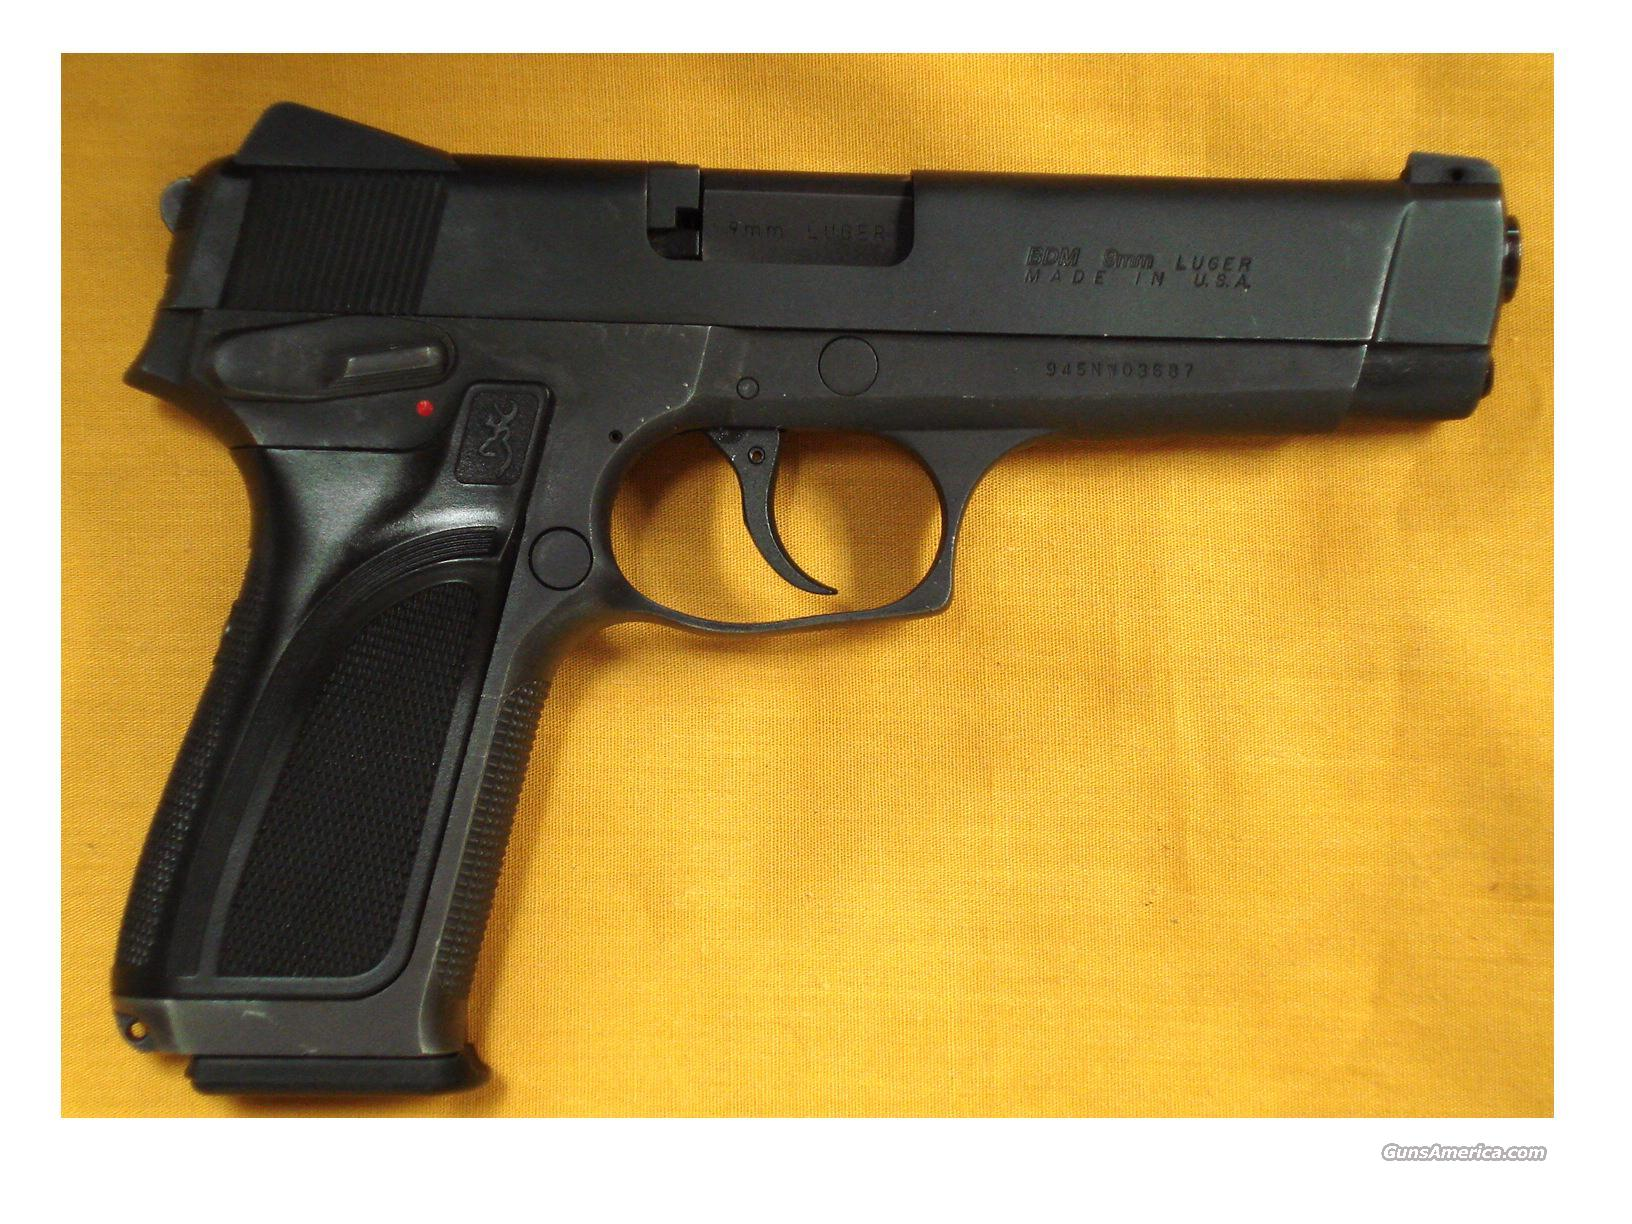 "BROWNING BDM 9MM 4 3/4"" BARREL  Guns > Pistols > Browning Pistols > Other Autos"